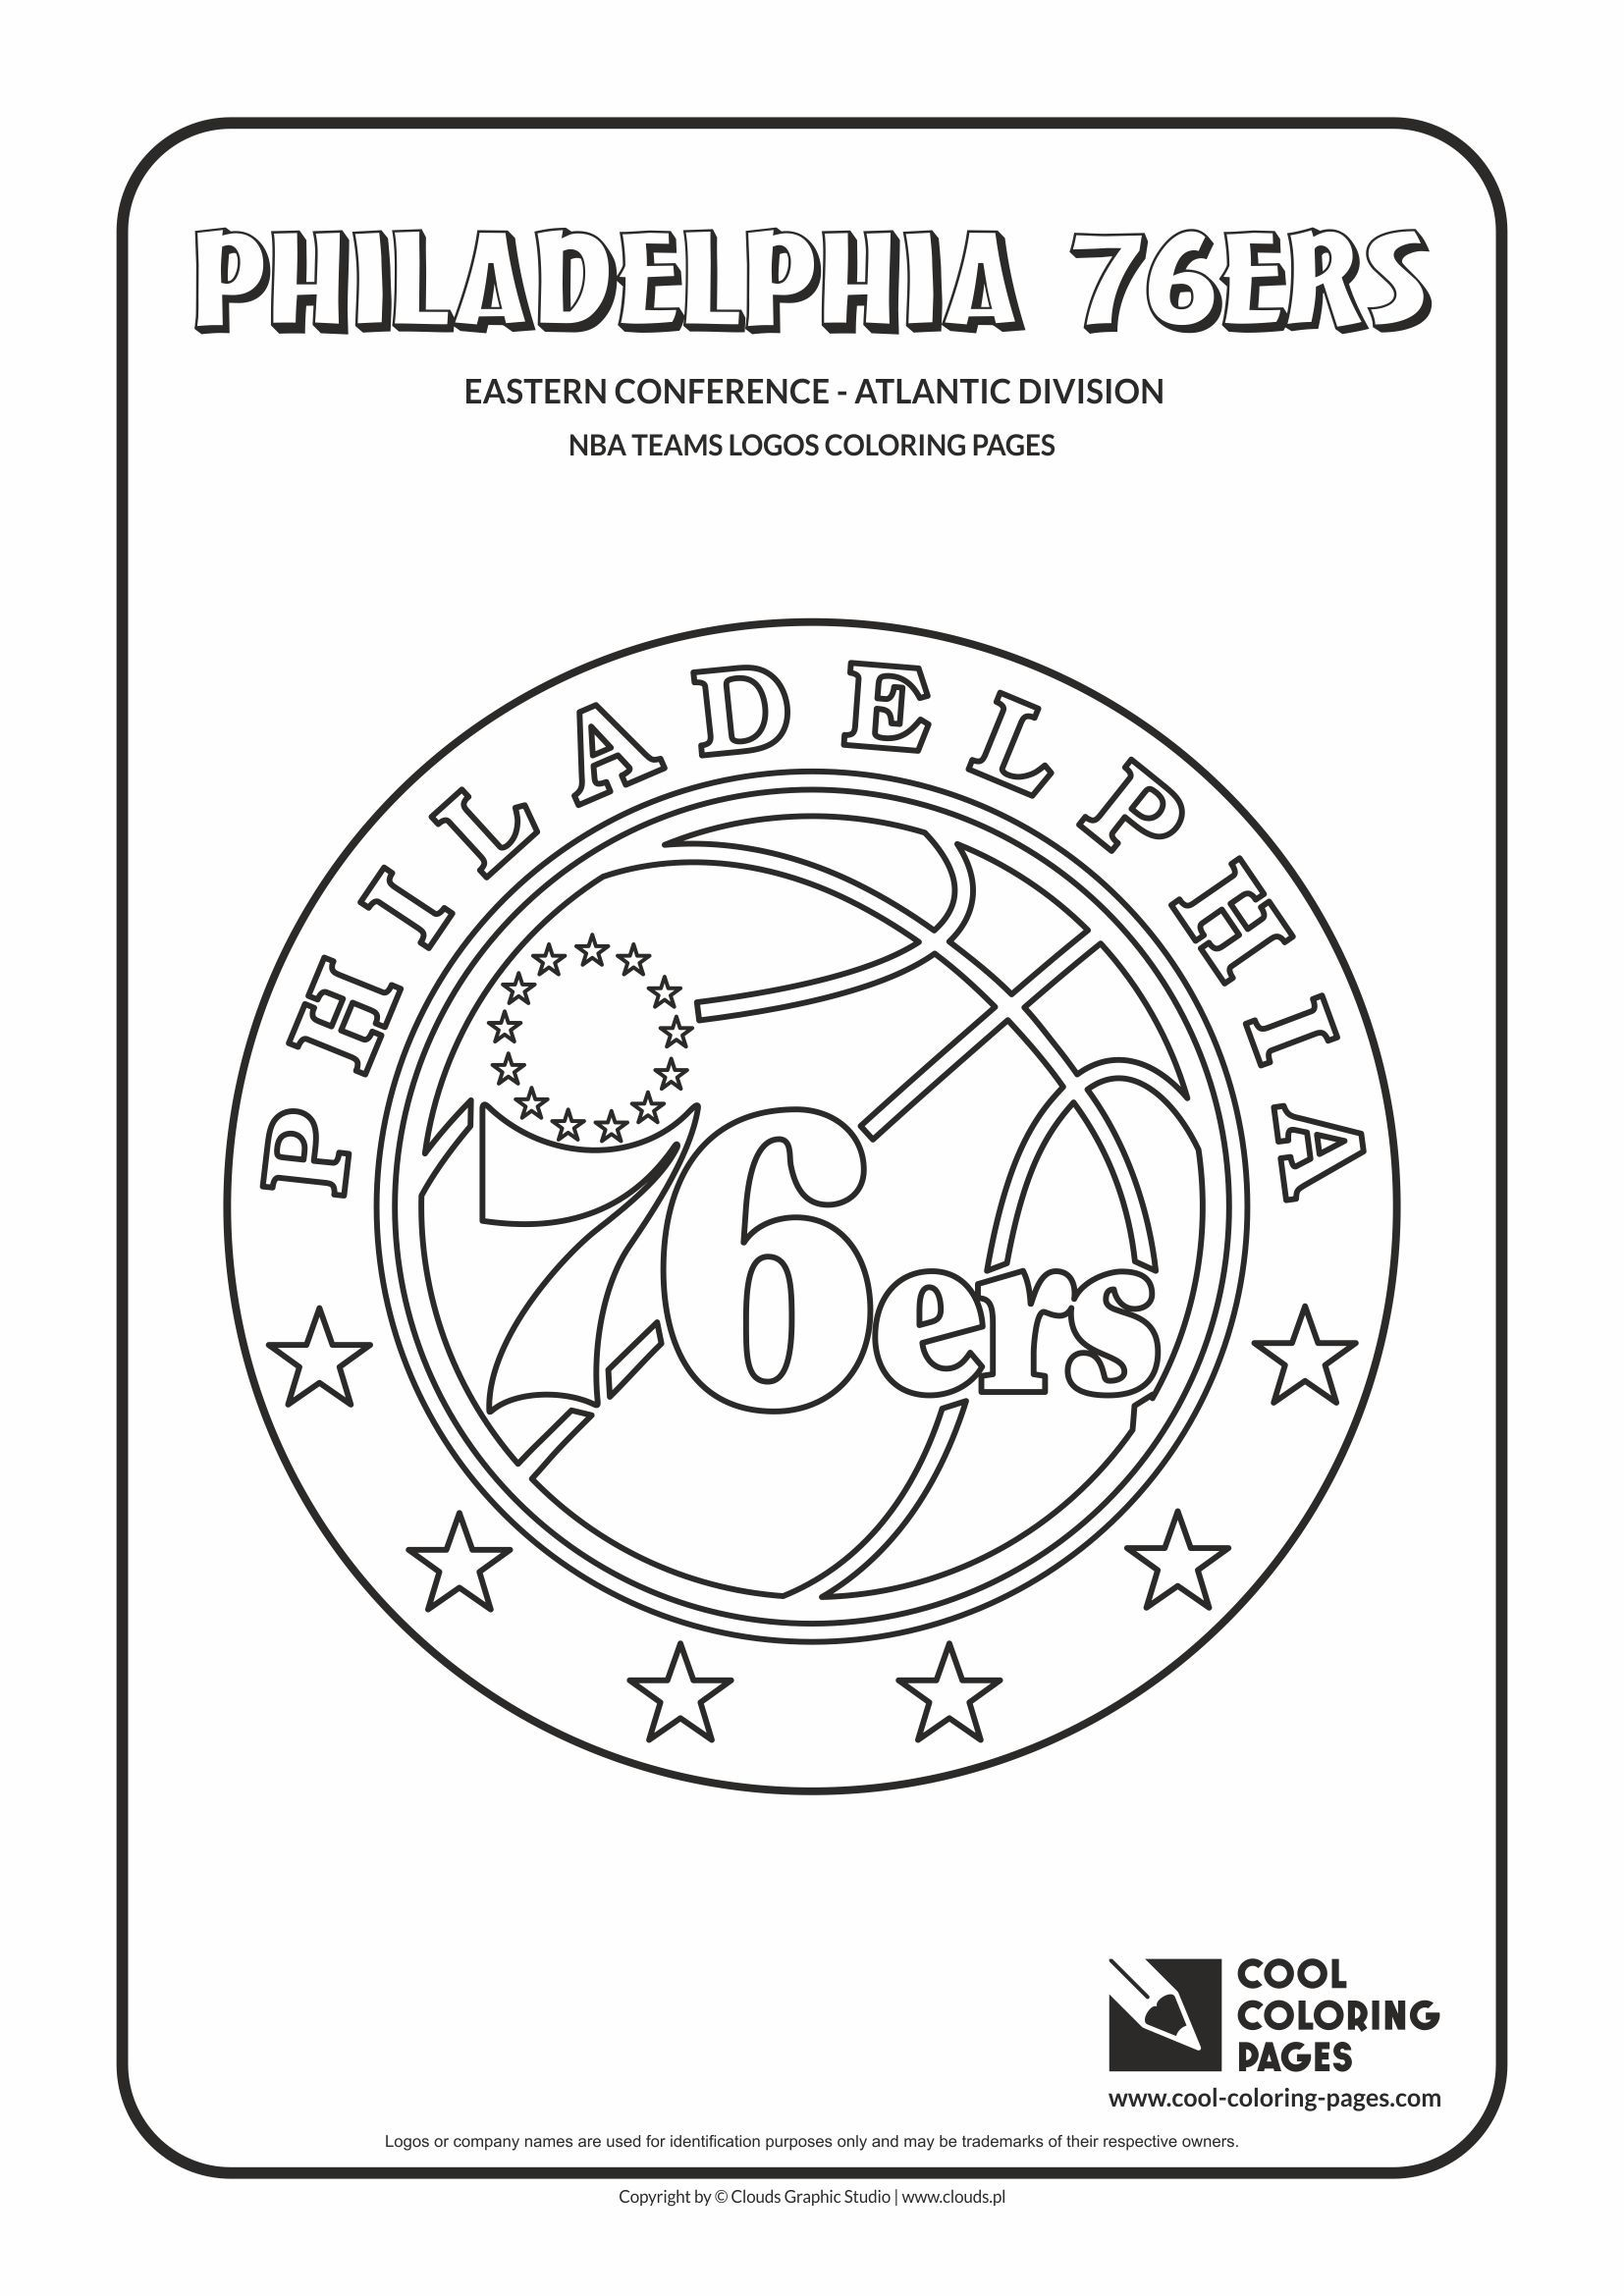 Cool Coloring Pages - NBA Teams Logos / Philadelphia 76ers logo ...